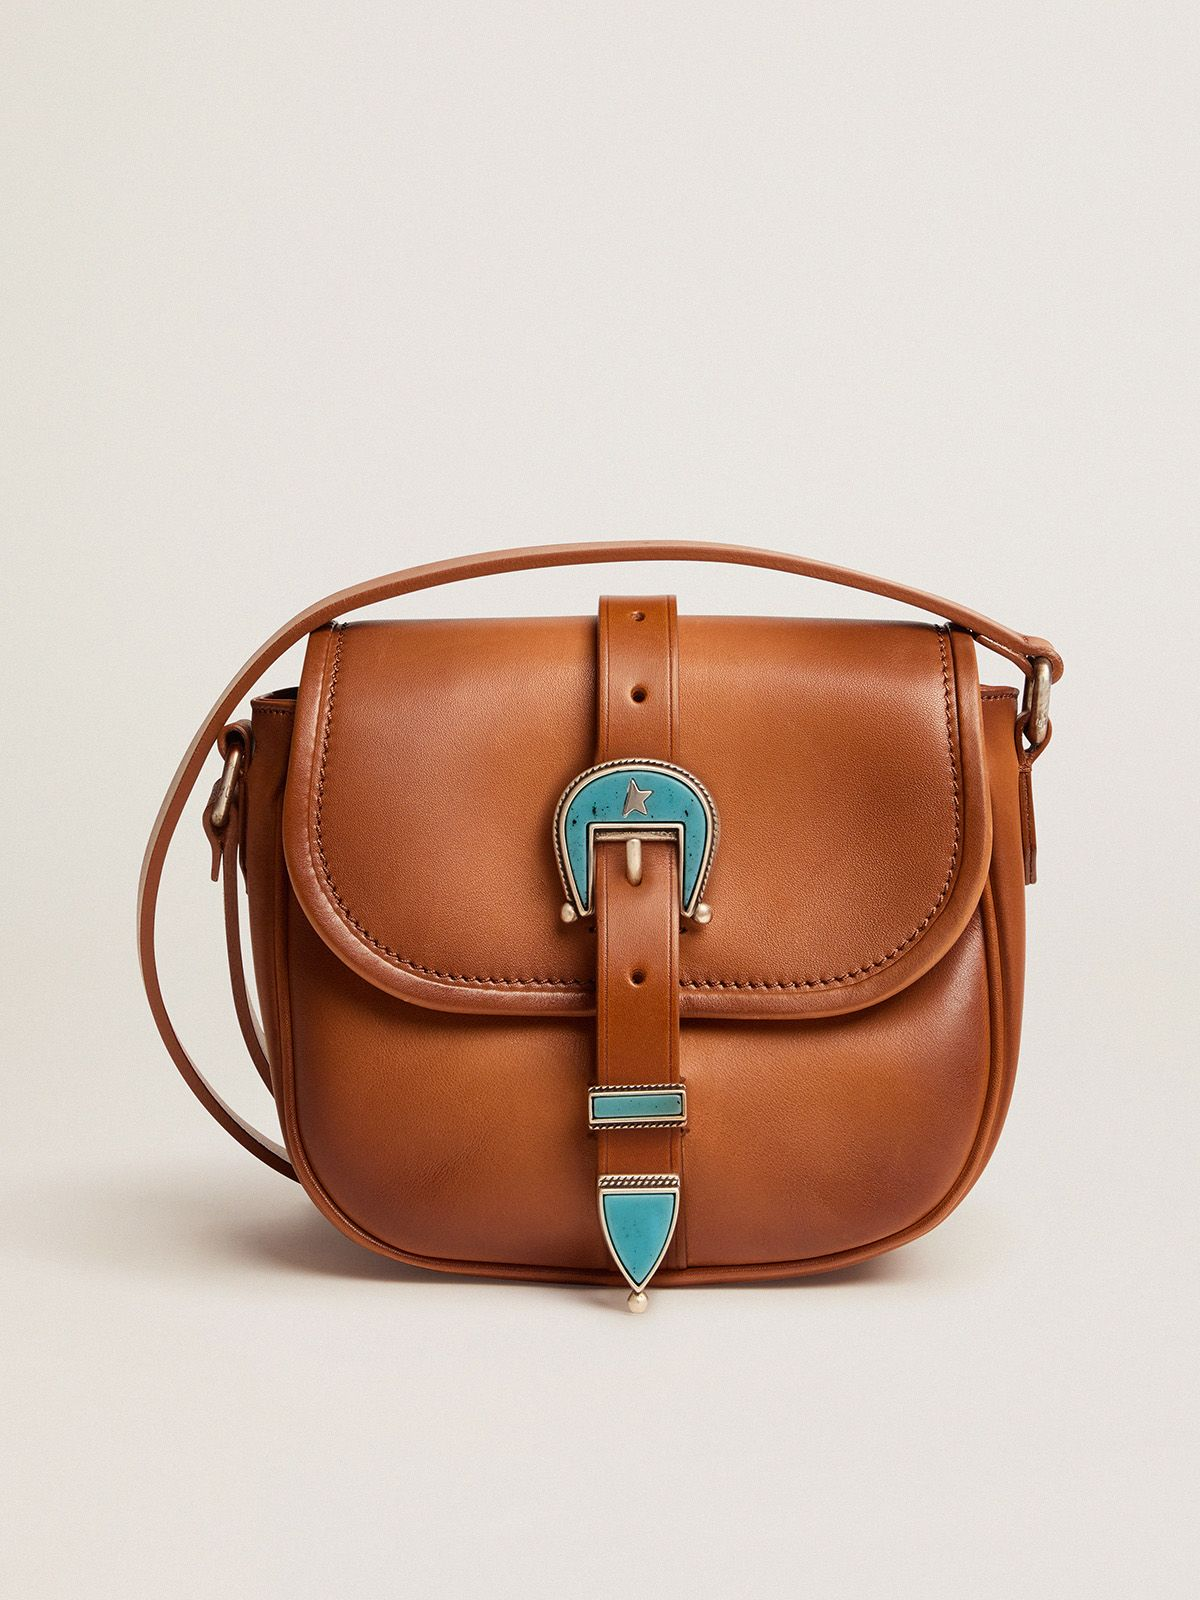 Small Rodeo Bag in pale tan leather with blue buckle